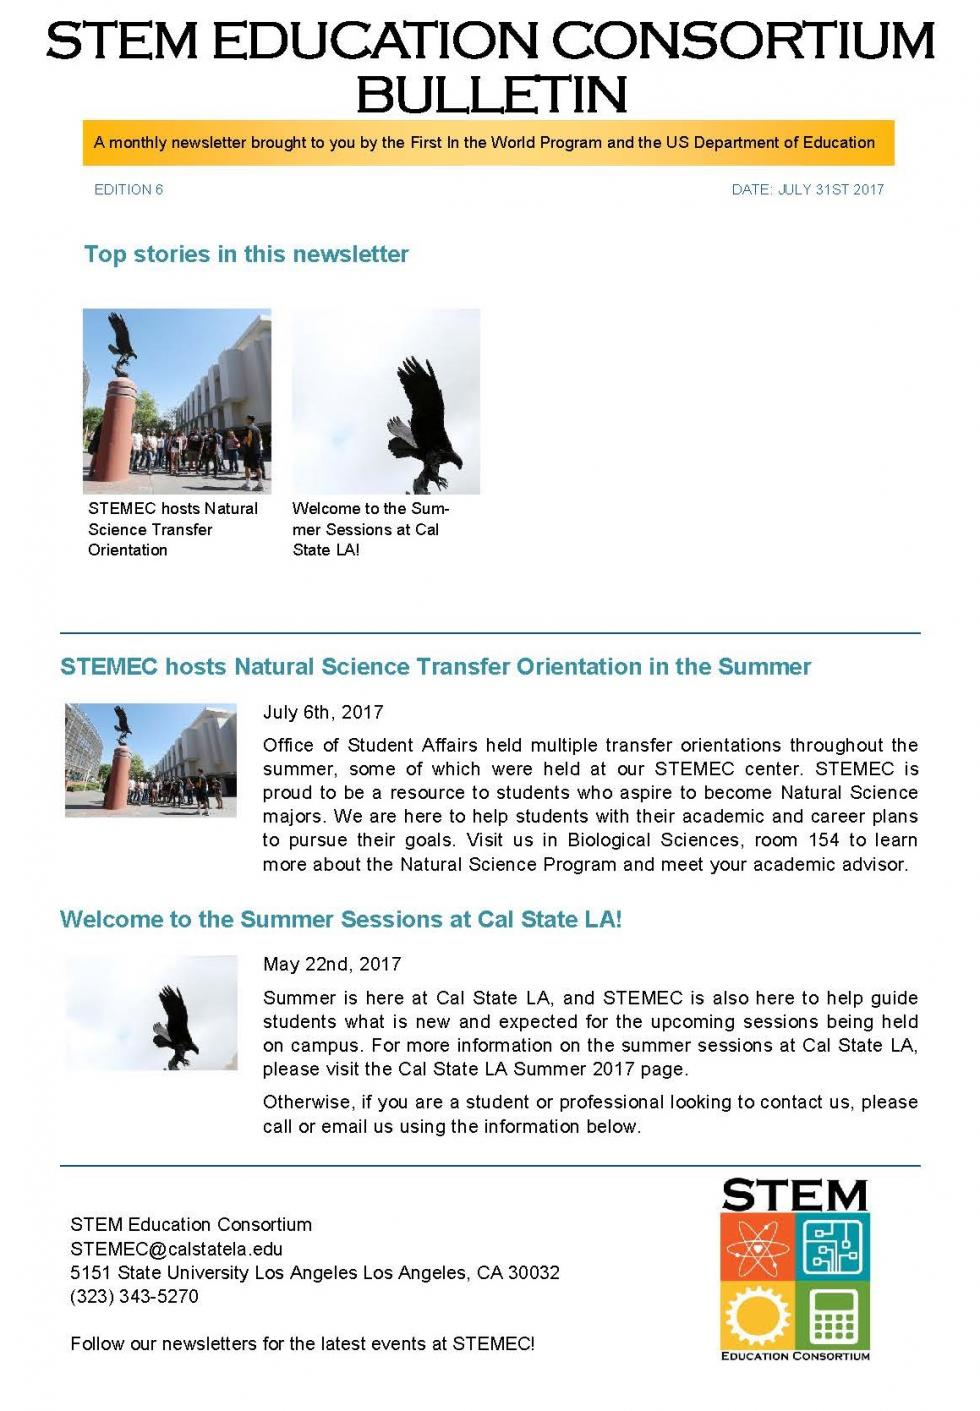 STEMEC Current Events and News Bulletin Edition 6 July 2017